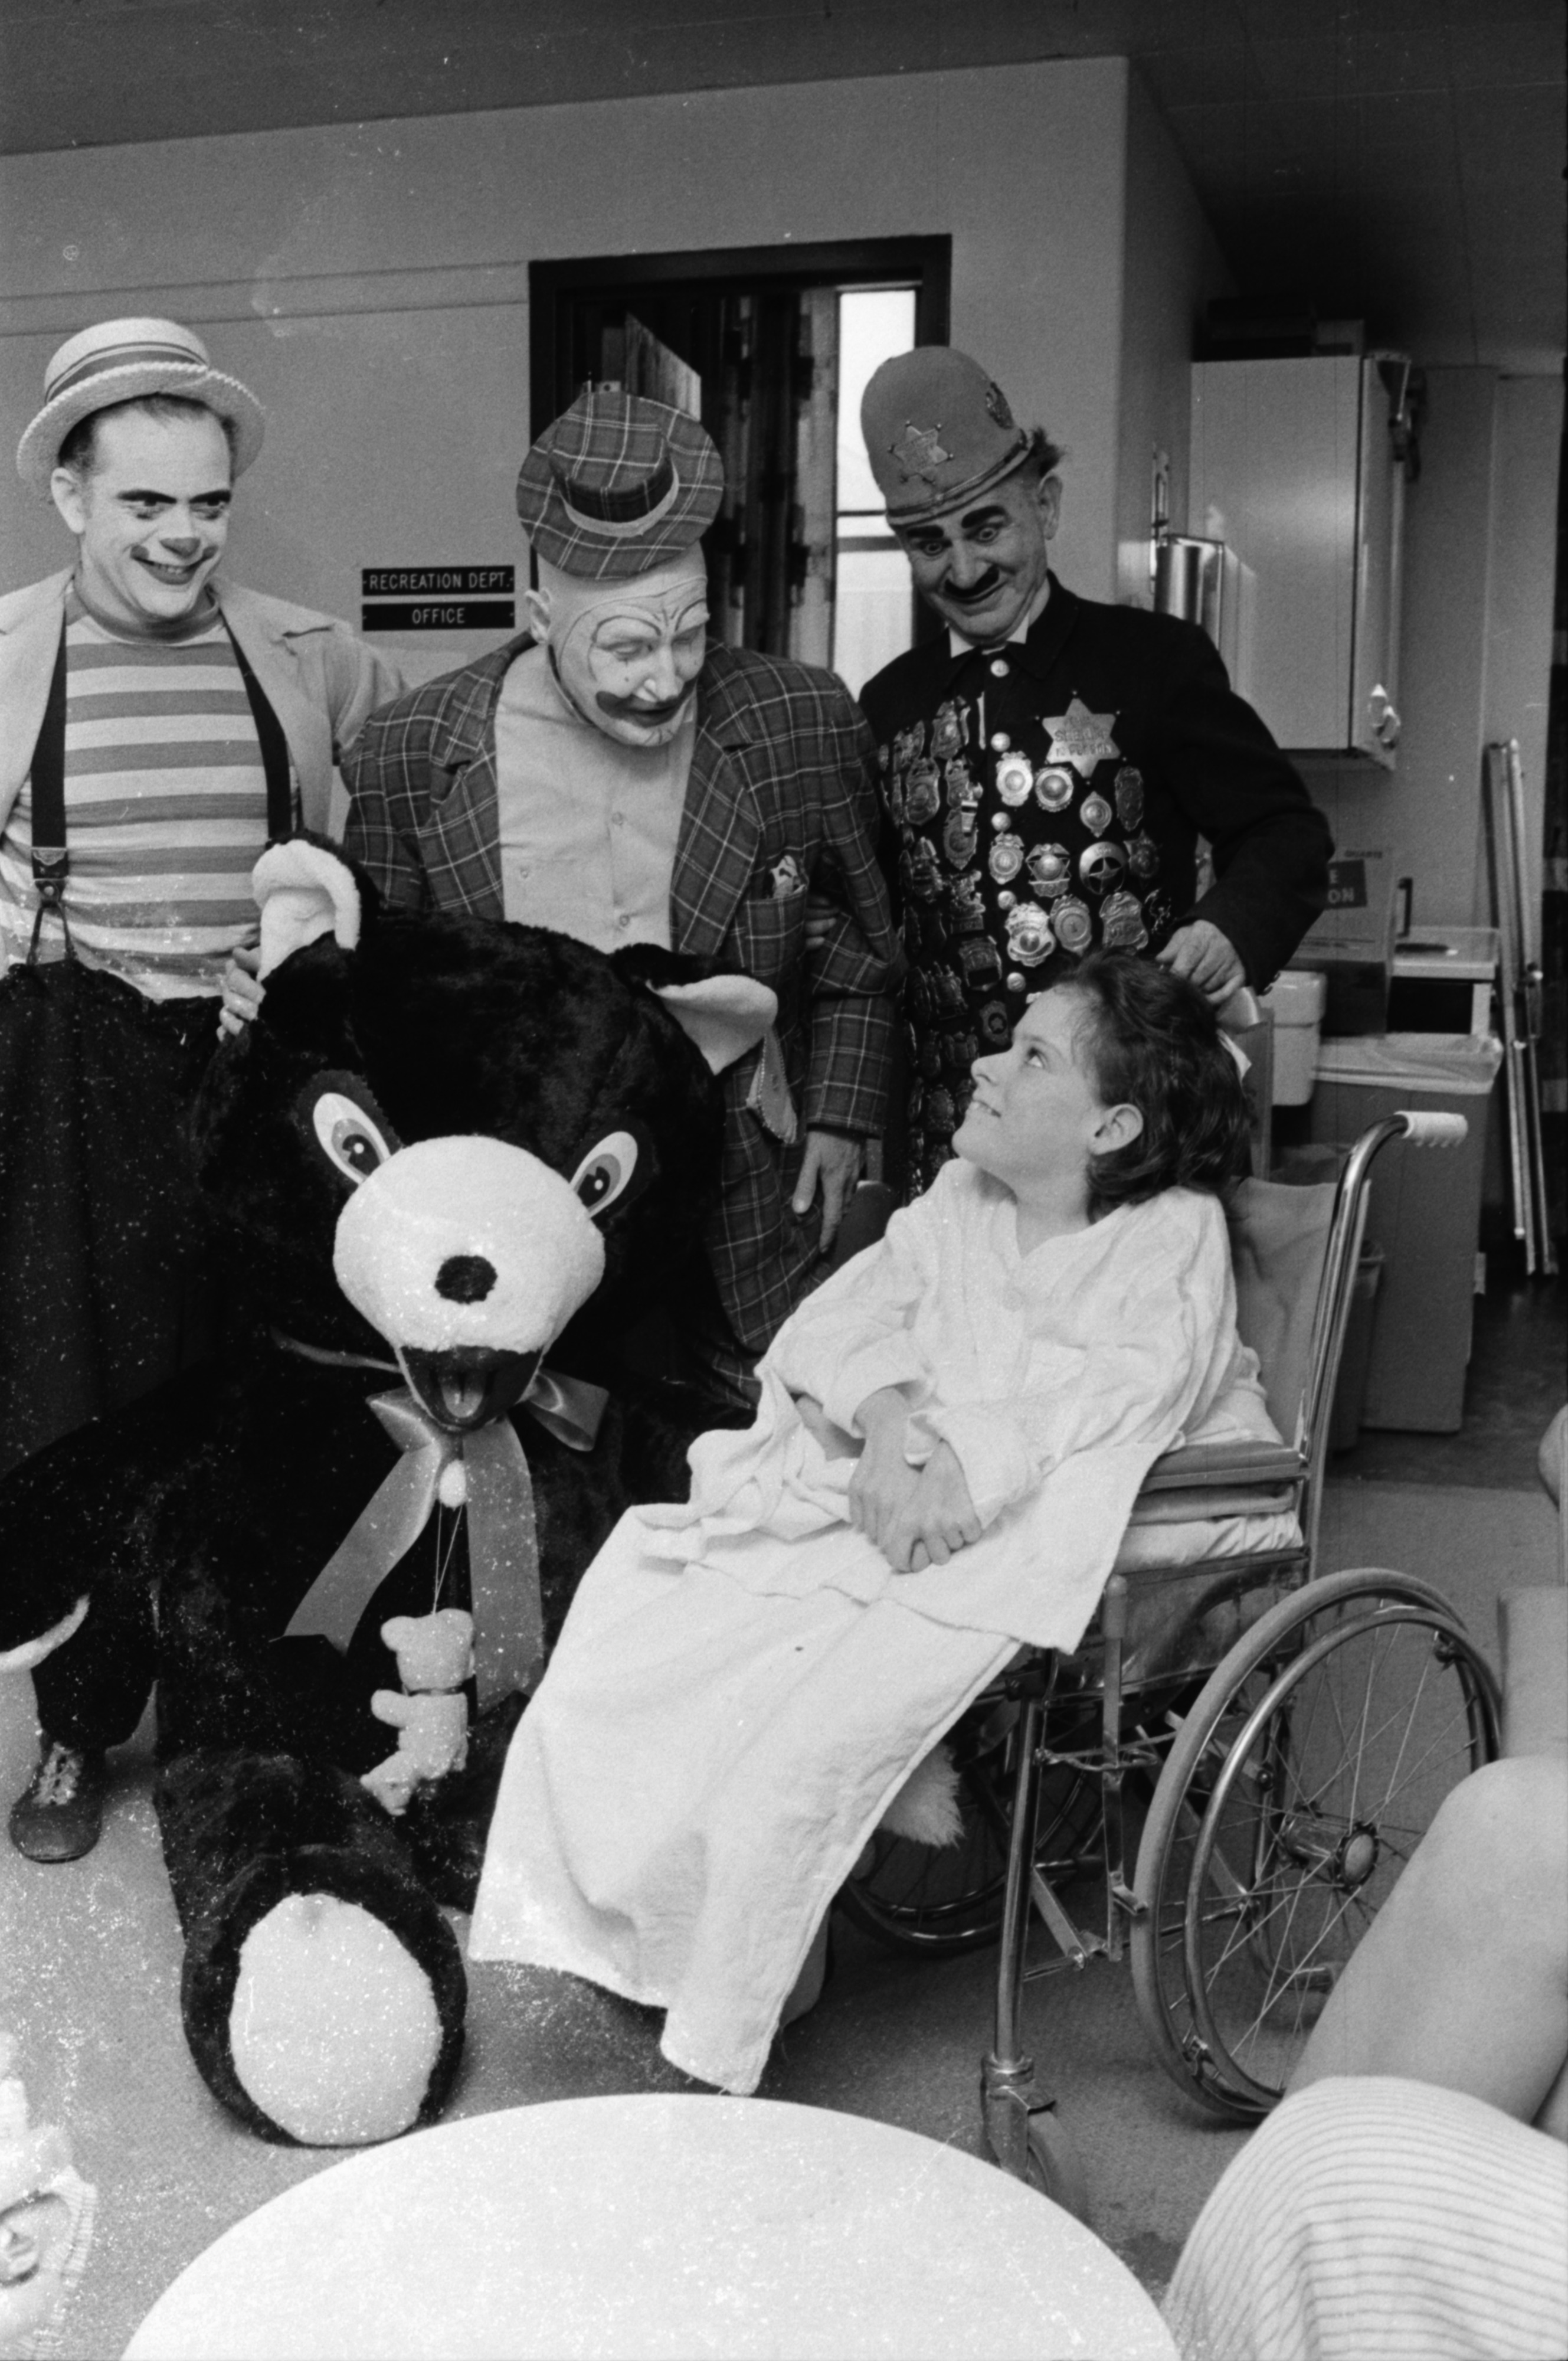 Clowns from the Shrine Circus visit Kay Schields at University Hospital, February 1969 image